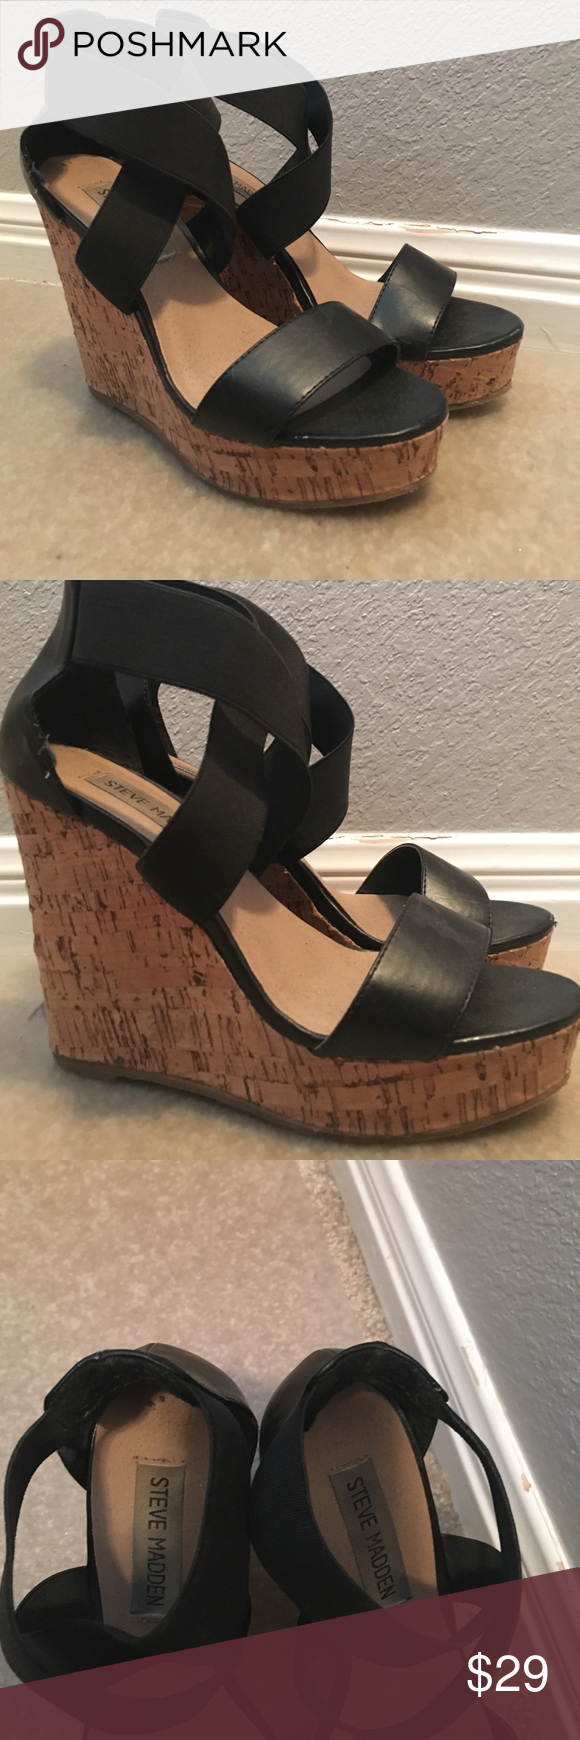 STEVE MADDEN WEDGES Elastic straps! GREAT CONDITION Steve Madden Shoes Wedges